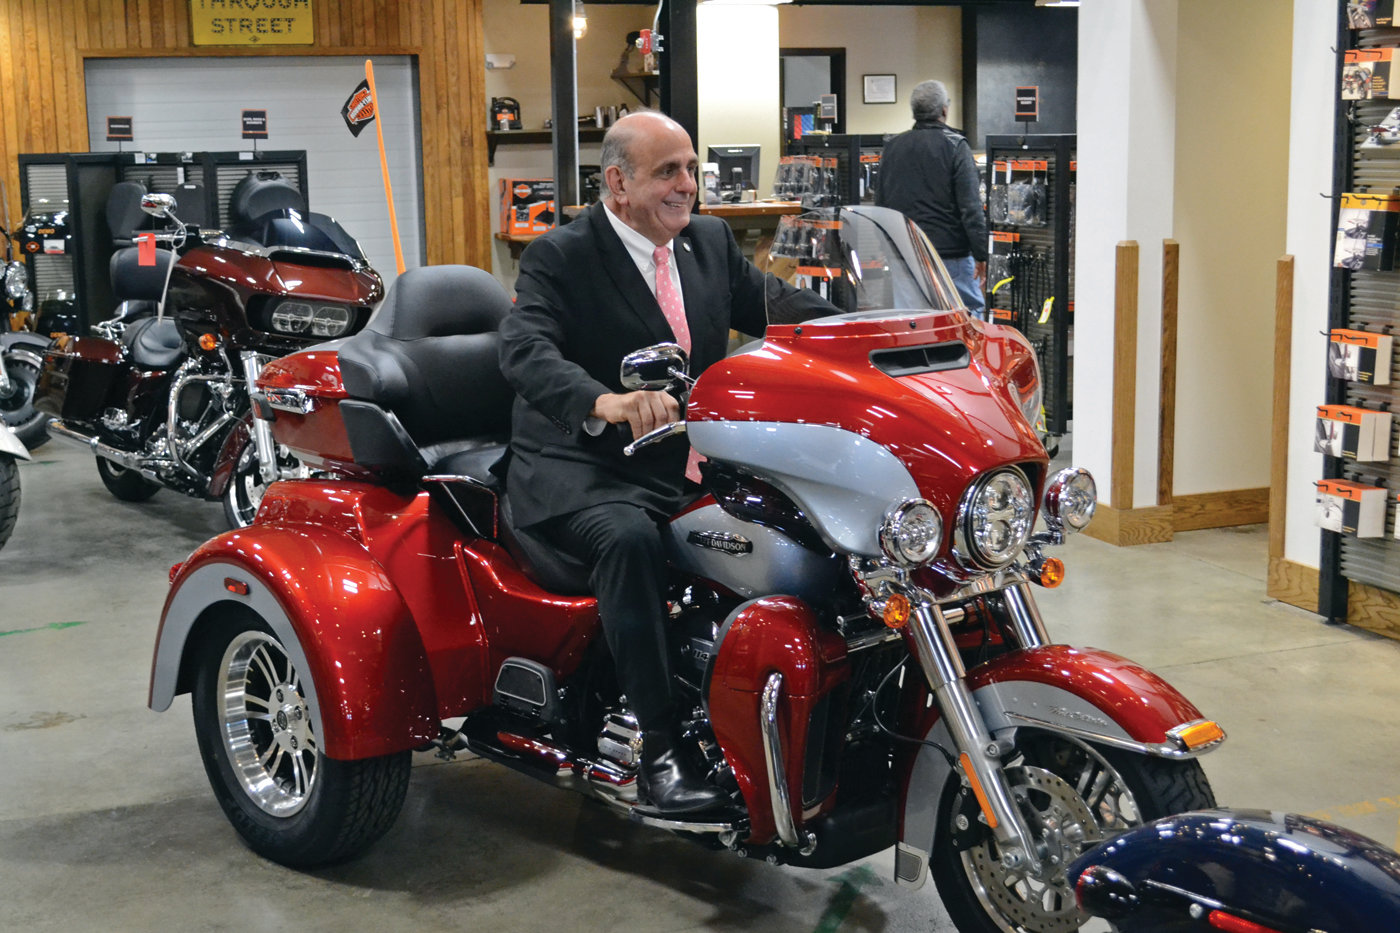 KID IN A CANDY STORE: Mayor Joseph Solomon was beaming like a child on his first bicycle behind the handlebars of this cherry red Tri-Glide, in the main showroom of Russ' Ocean State Harley-Davidson.